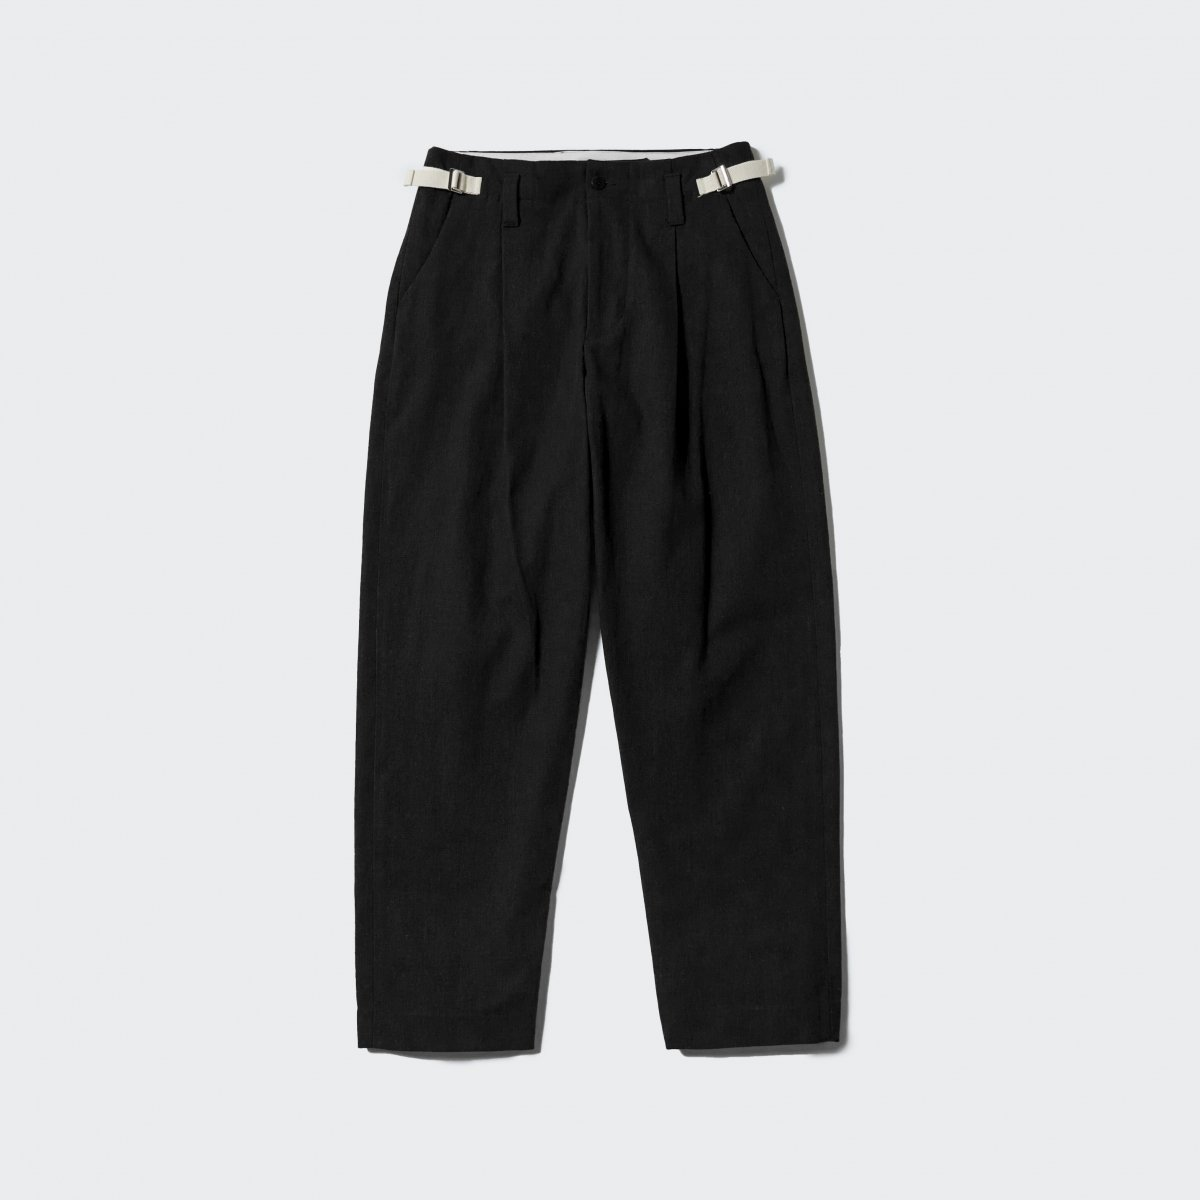 <img class='new_mark_img1' src='https://img.shop-pro.jp/img/new/icons5.gif' style='border:none;display:inline;margin:0px;padding:0px;width:auto;' />【2021AW】ARMY CLOTH TAPARED PT | BLACK